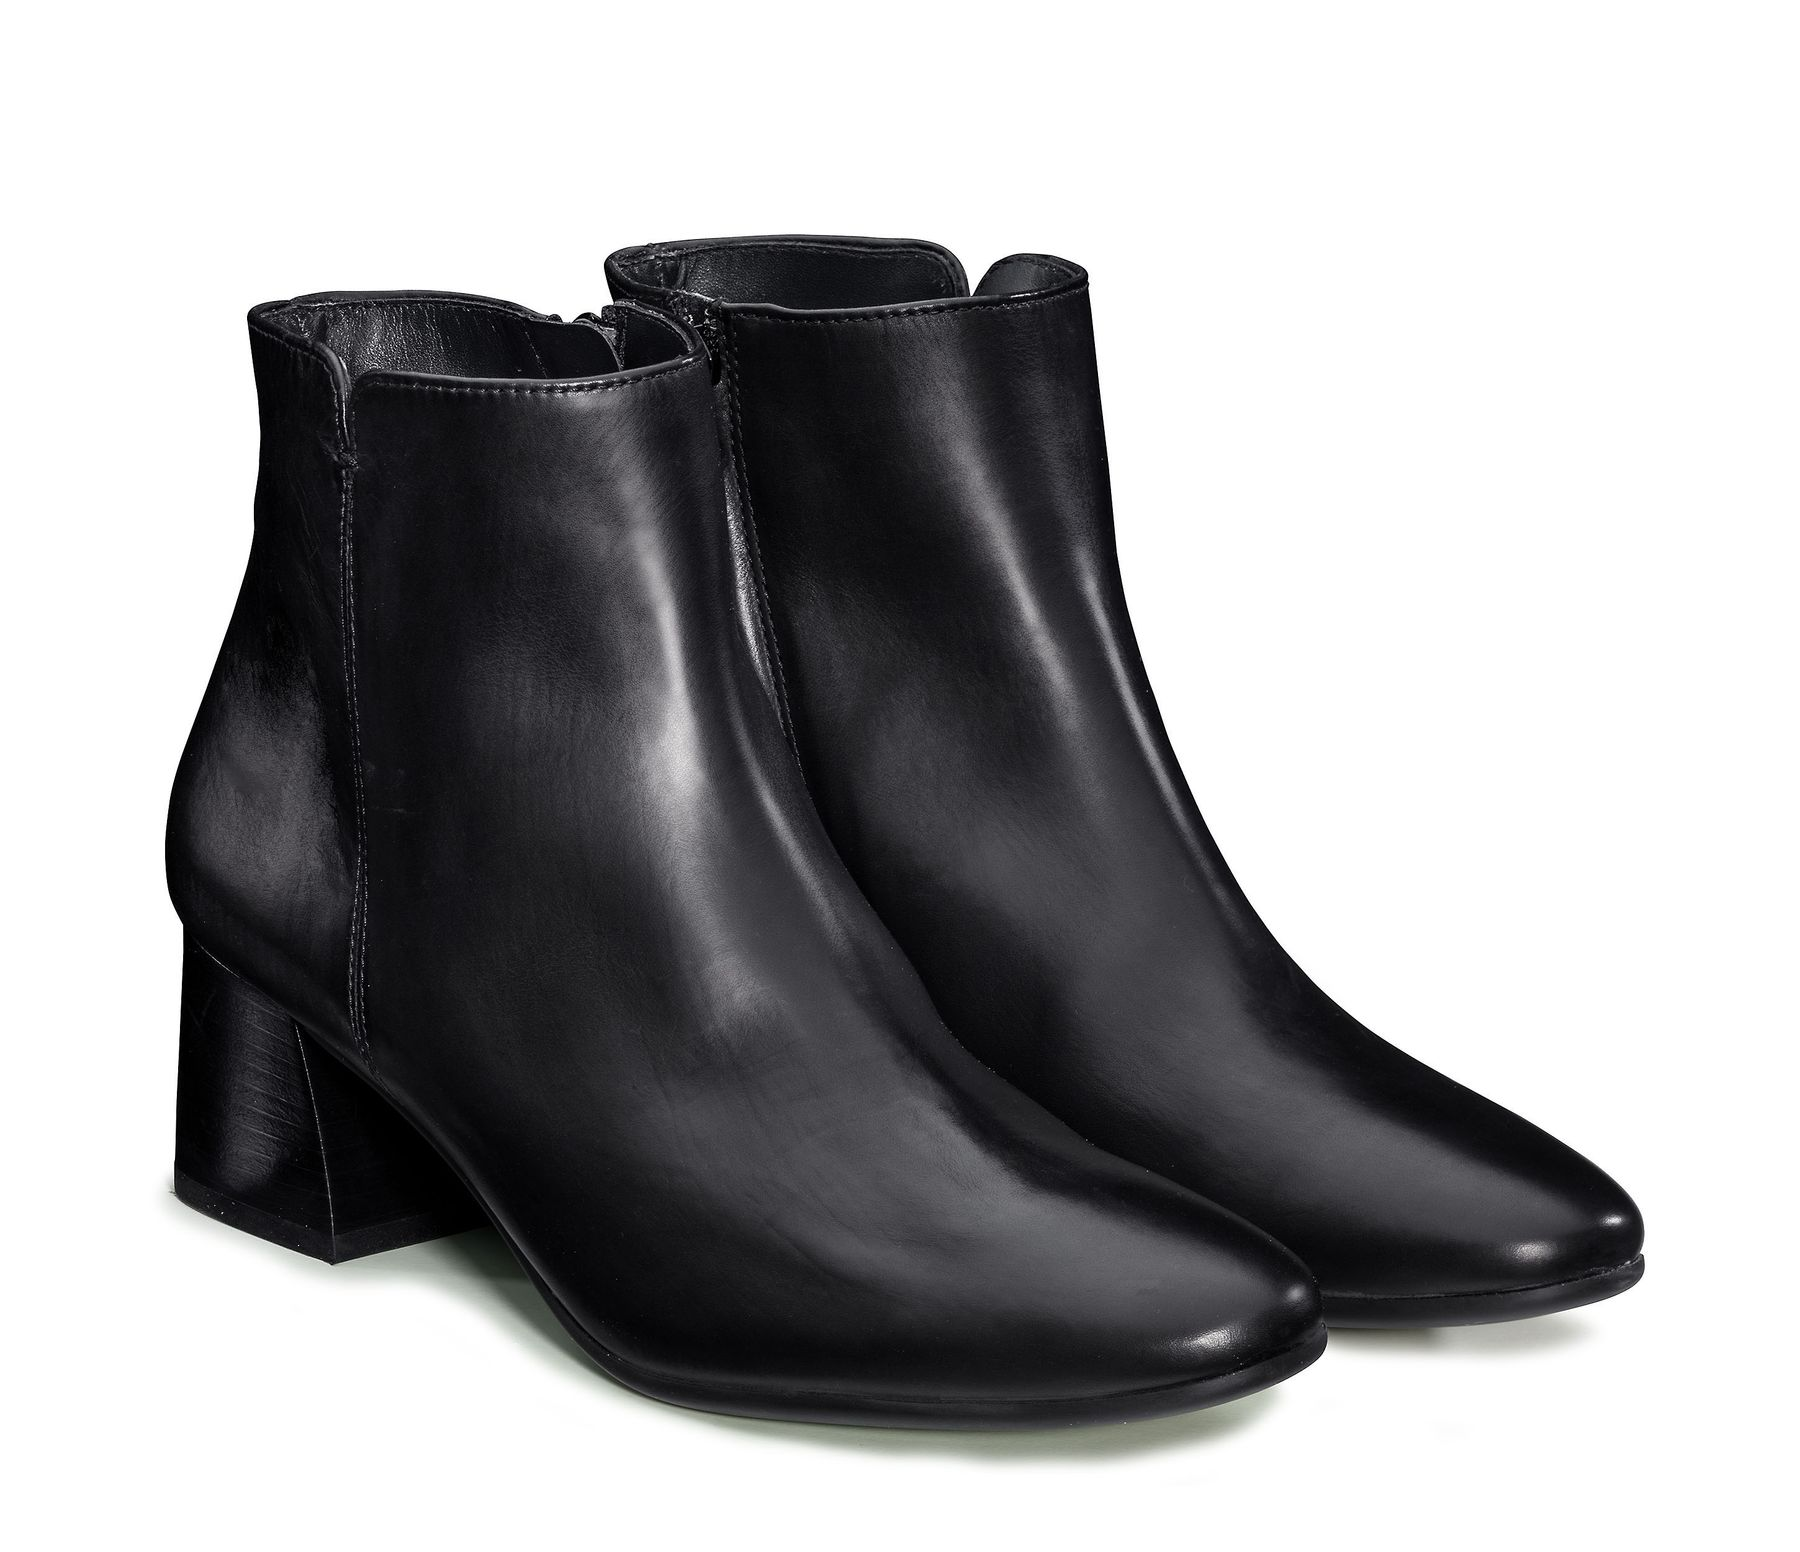 Ankle boots for women in black - Paul Green